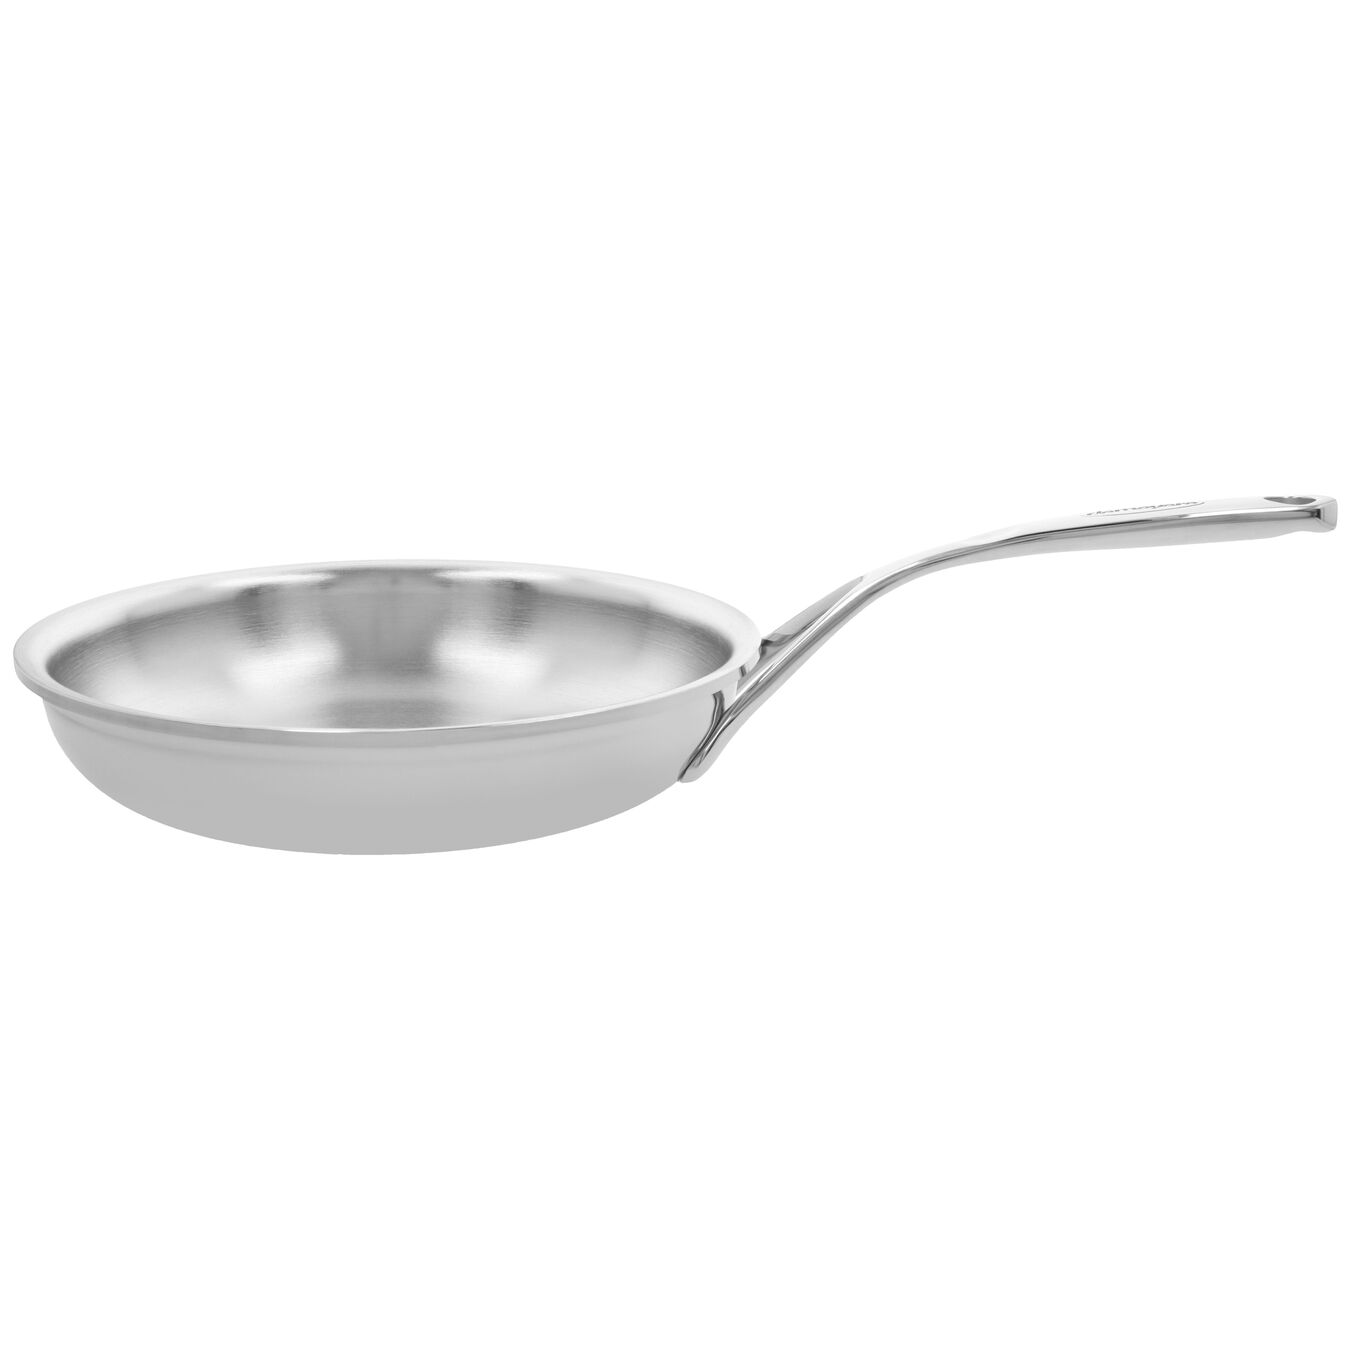 9.5-inch, 18/10 Stainless Steel, Frying pan,,large 1